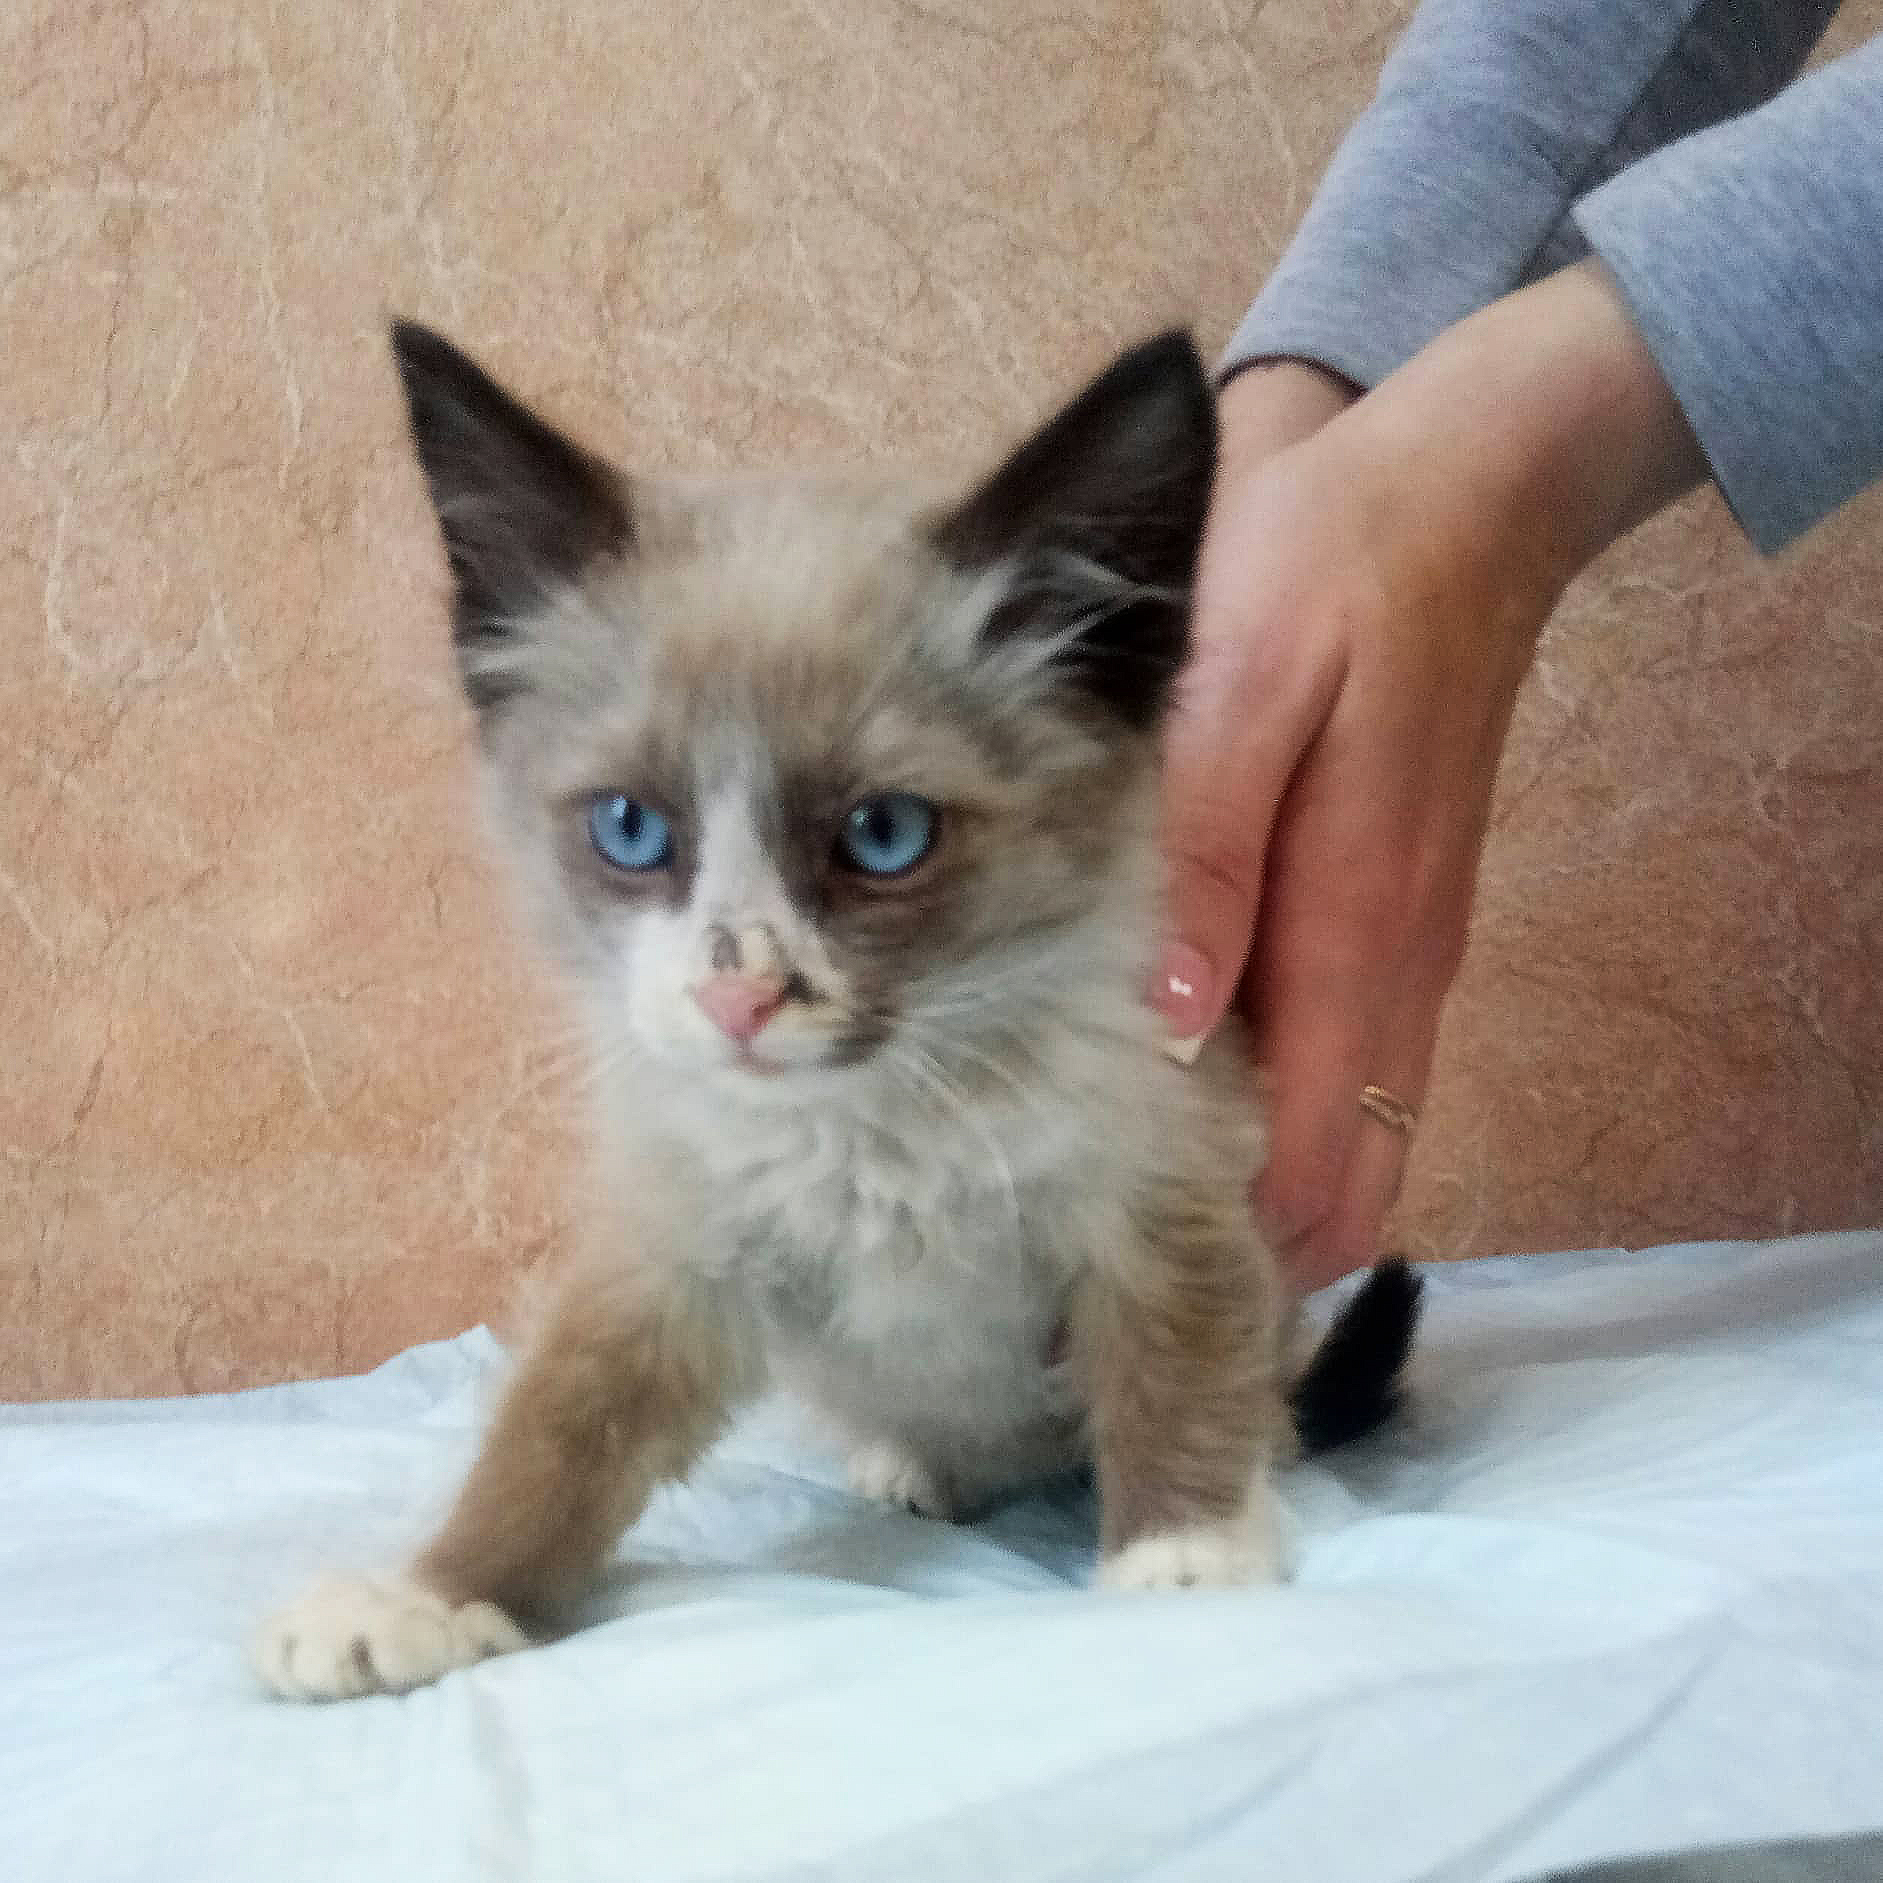 Adorable kitten with blue eyes like a half-breed, the Neva masquerade